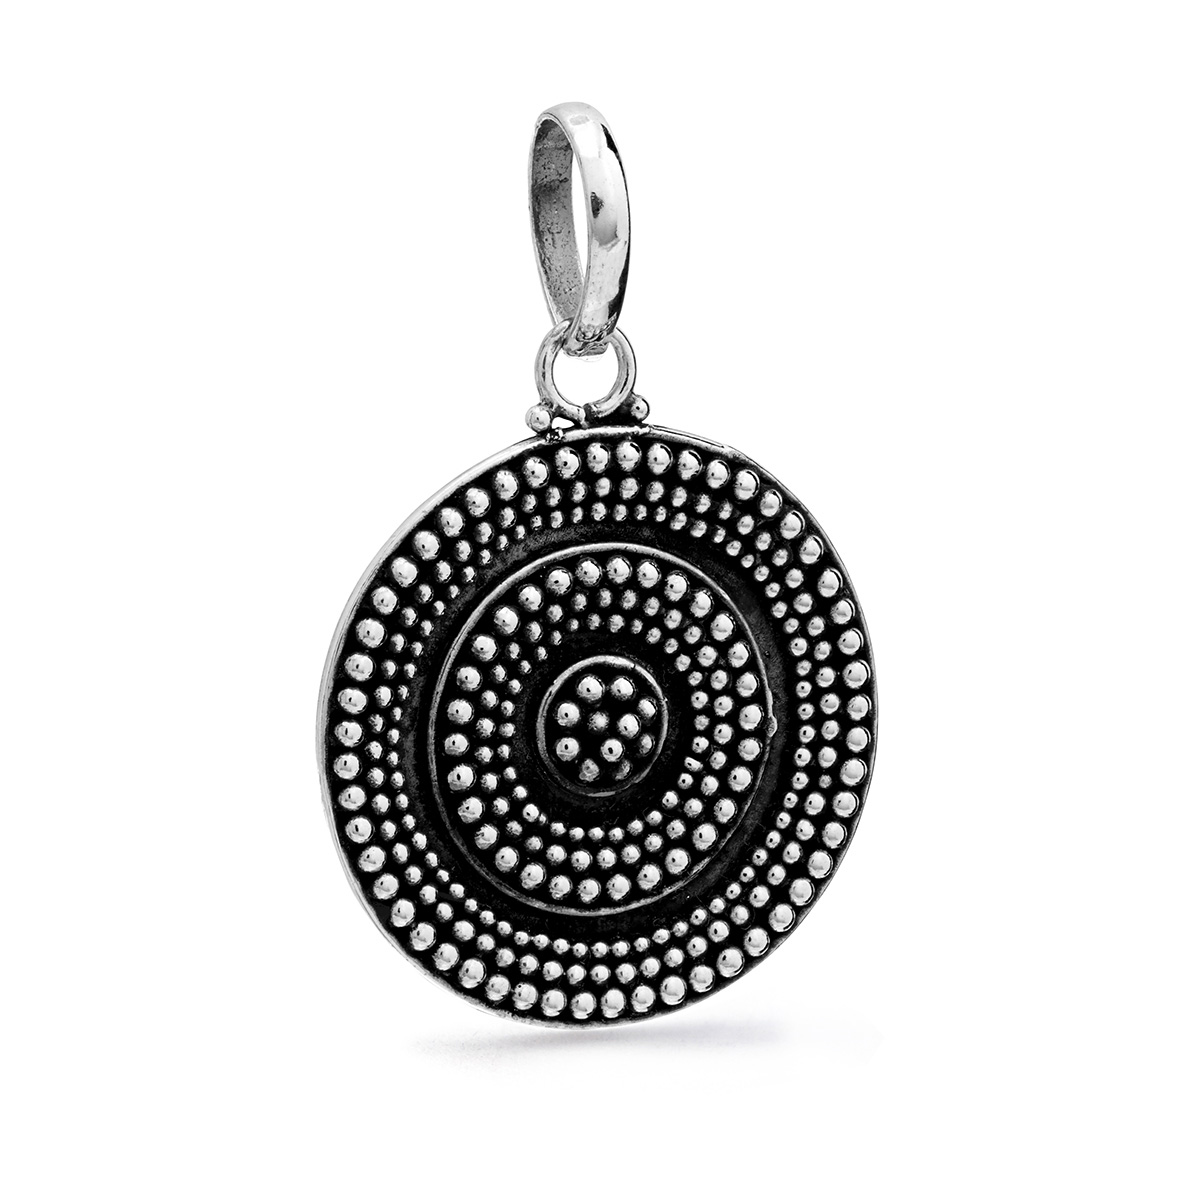 Amed Silver Pendant